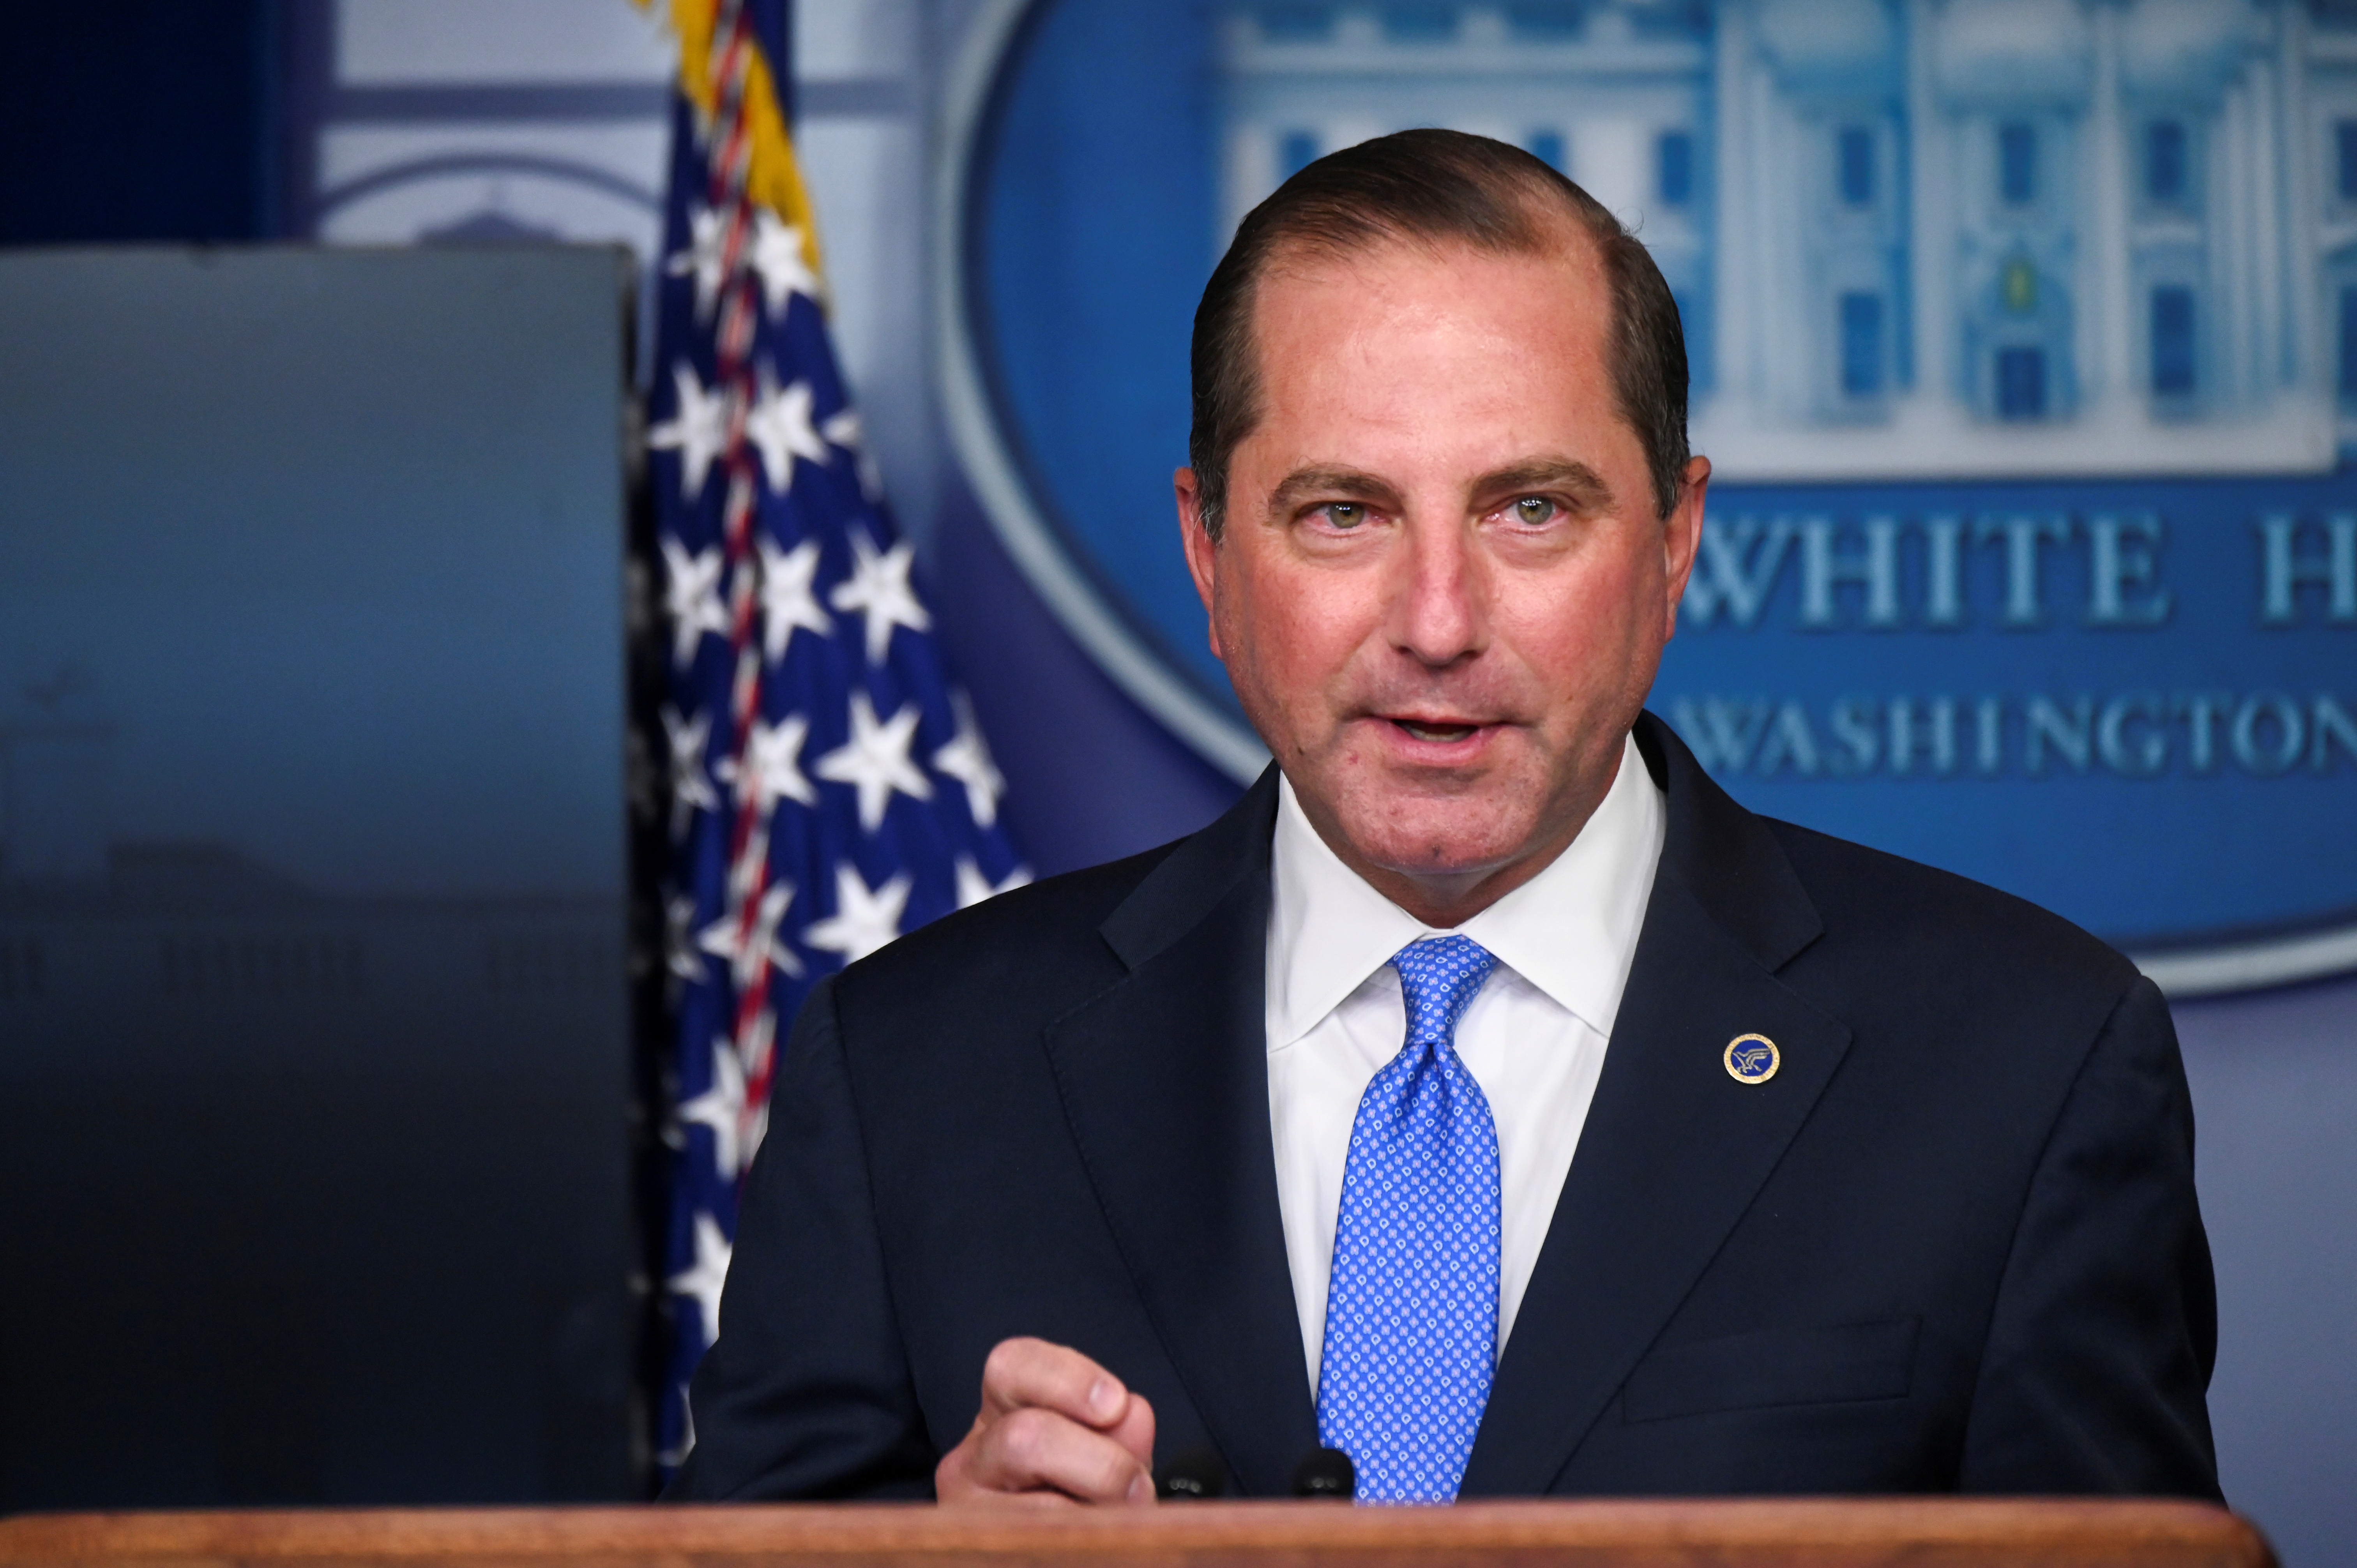 U.S. Health and Human Services (HHS) Secretary Alex Azar speaks during a news conference about the latest coronavirus disease (COVID-19) developments, in the Brady Press Briefing Room of the White House in Washington, U.S. August 23, 2020. REUTERS/Erin Scott/File Photo